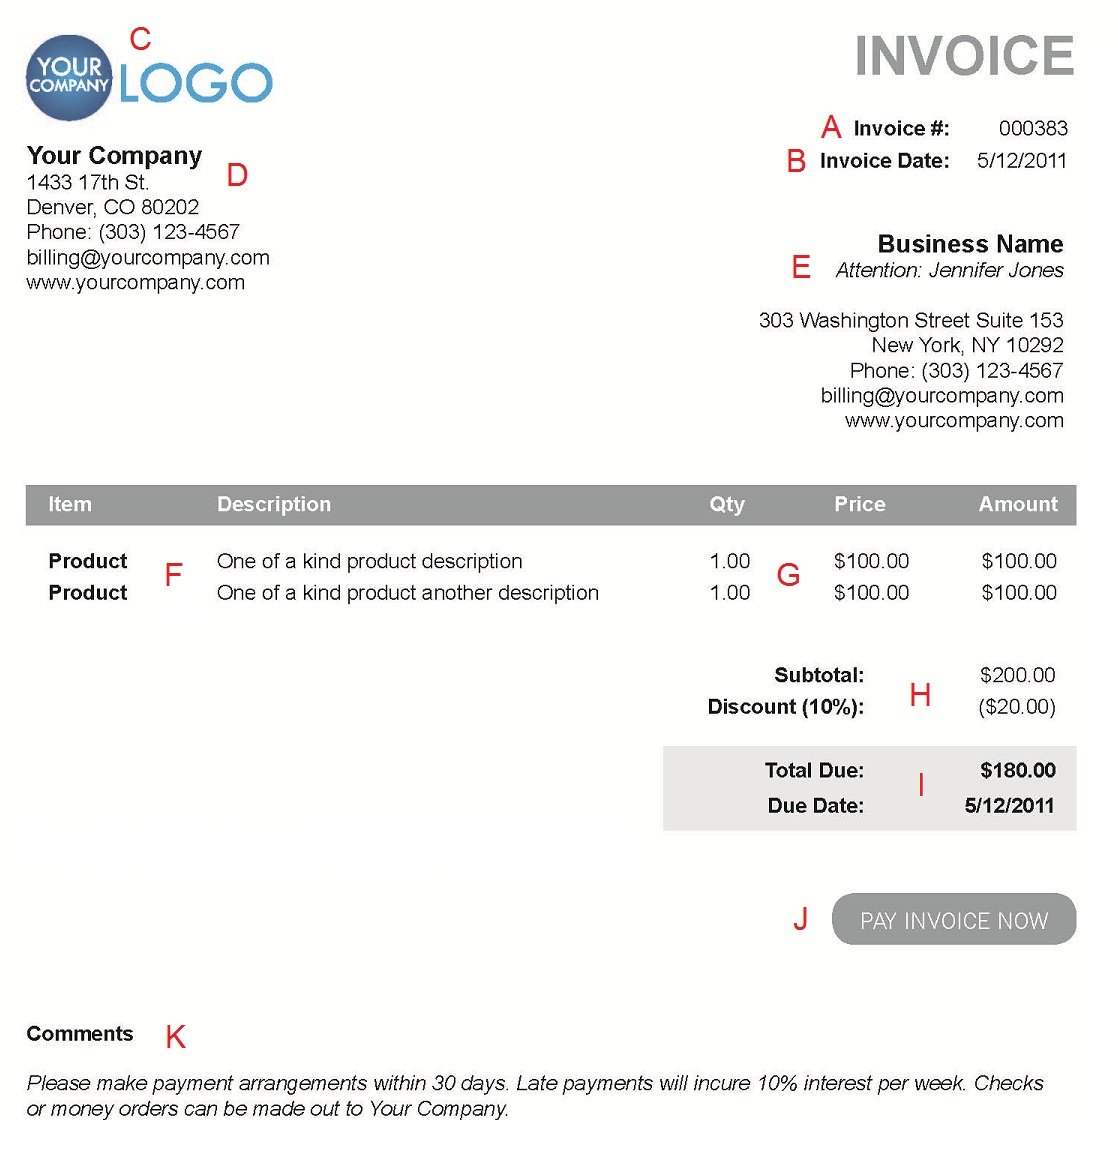 Usdgus  Marvelous The  Different Sections Of An Electronic Payment Invoice With Fair A  With Captivating What Does Invoice Mean Also Blank Invoice Template In Addition Pro Forma Invoice And Toll By Plate Invoice As Well As Invoice Template Google Docs Additionally Invoice Example From Paysimplecom With Usdgus  Fair The  Different Sections Of An Electronic Payment Invoice With Captivating A  And Marvelous What Does Invoice Mean Also Blank Invoice Template In Addition Pro Forma Invoice From Paysimplecom